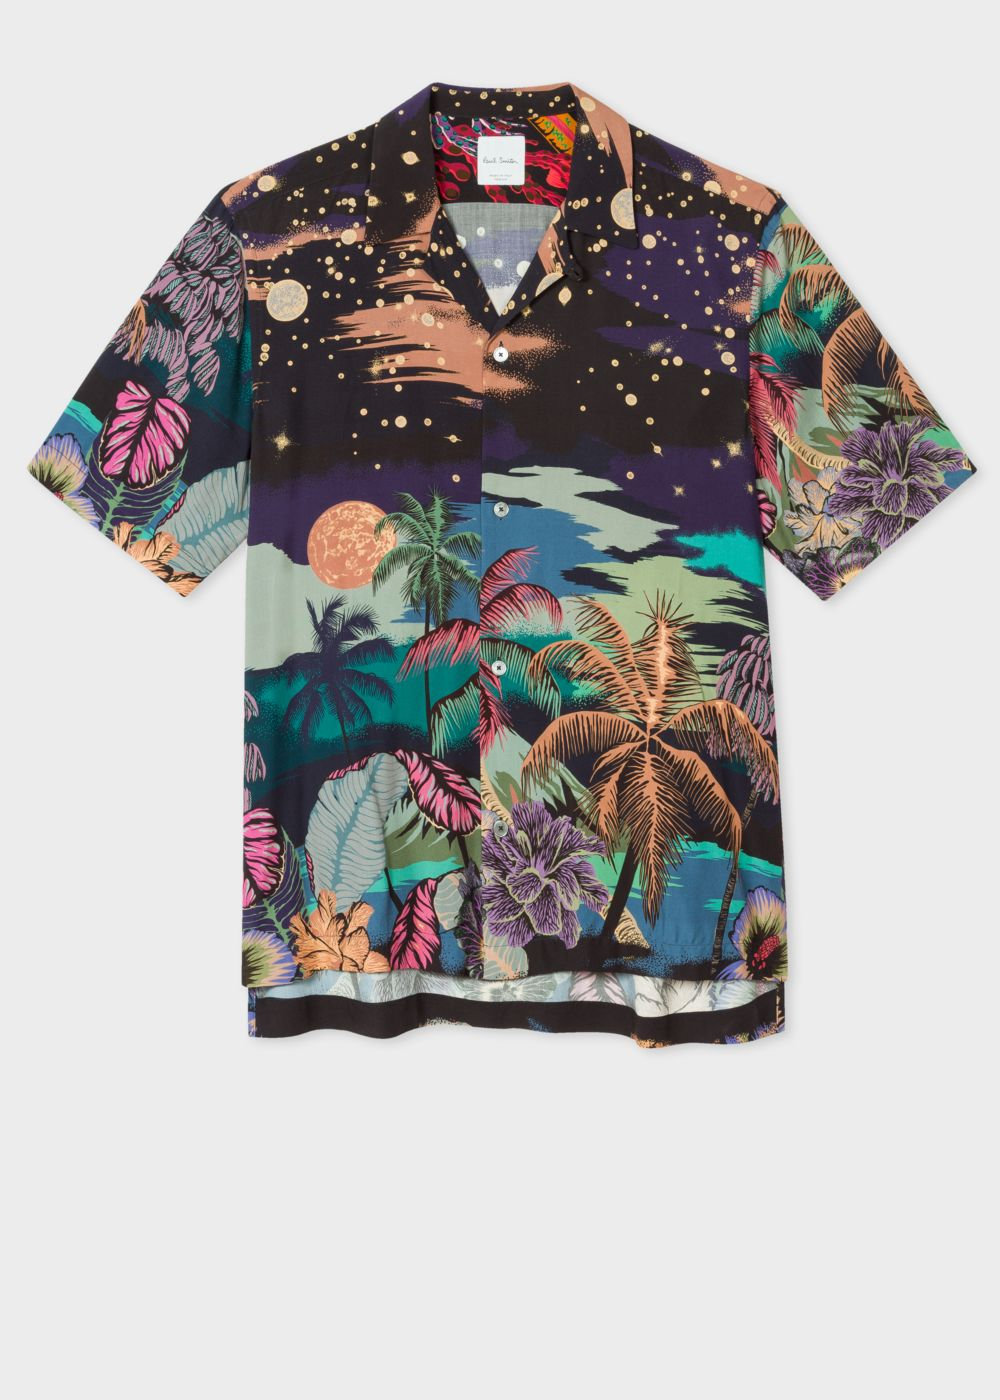 Paul Smith printed shirt - £215 - Our fav of the many, many printed shirts available this summer